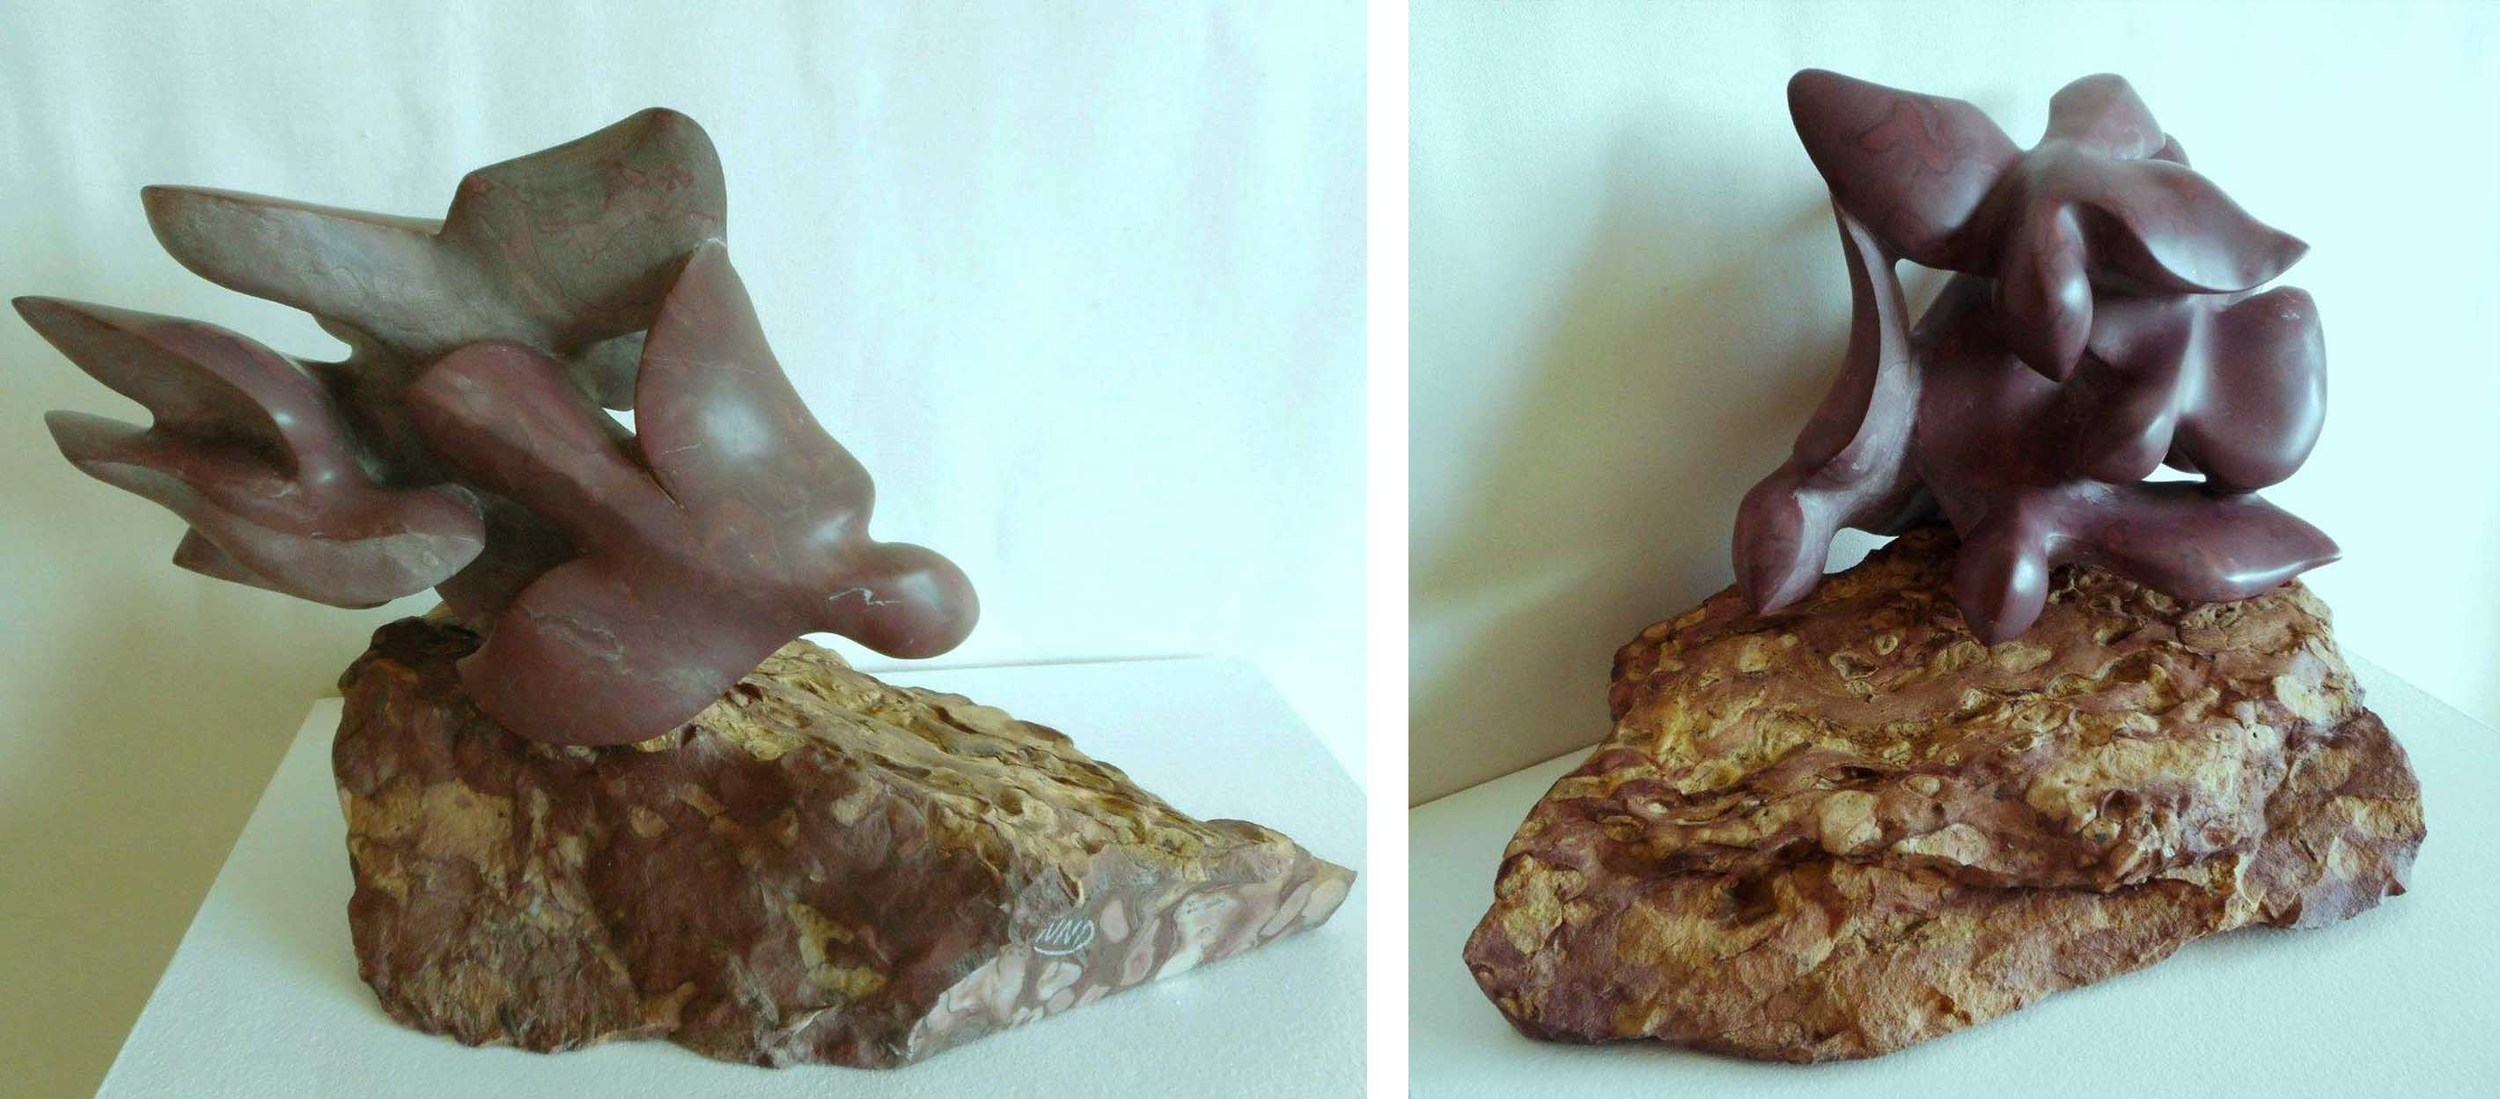 Flock in Flight - 12 x 9 x 10 inches - Swanton Red Marble